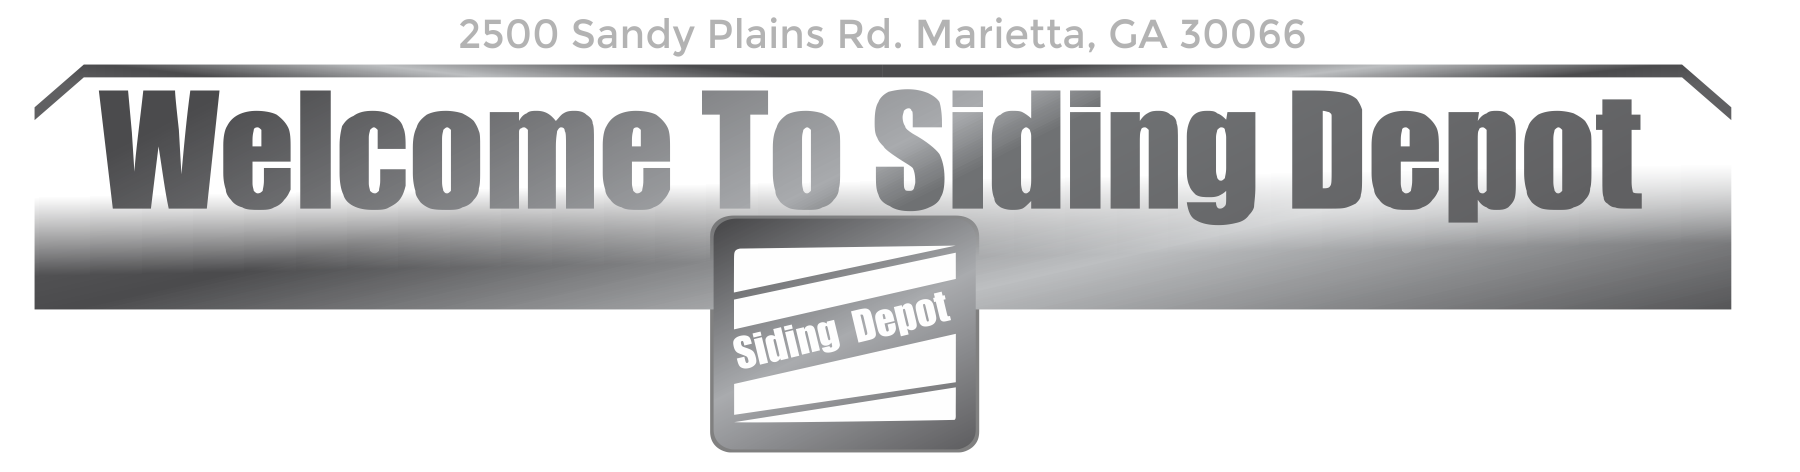 Welcome To Siding Depot